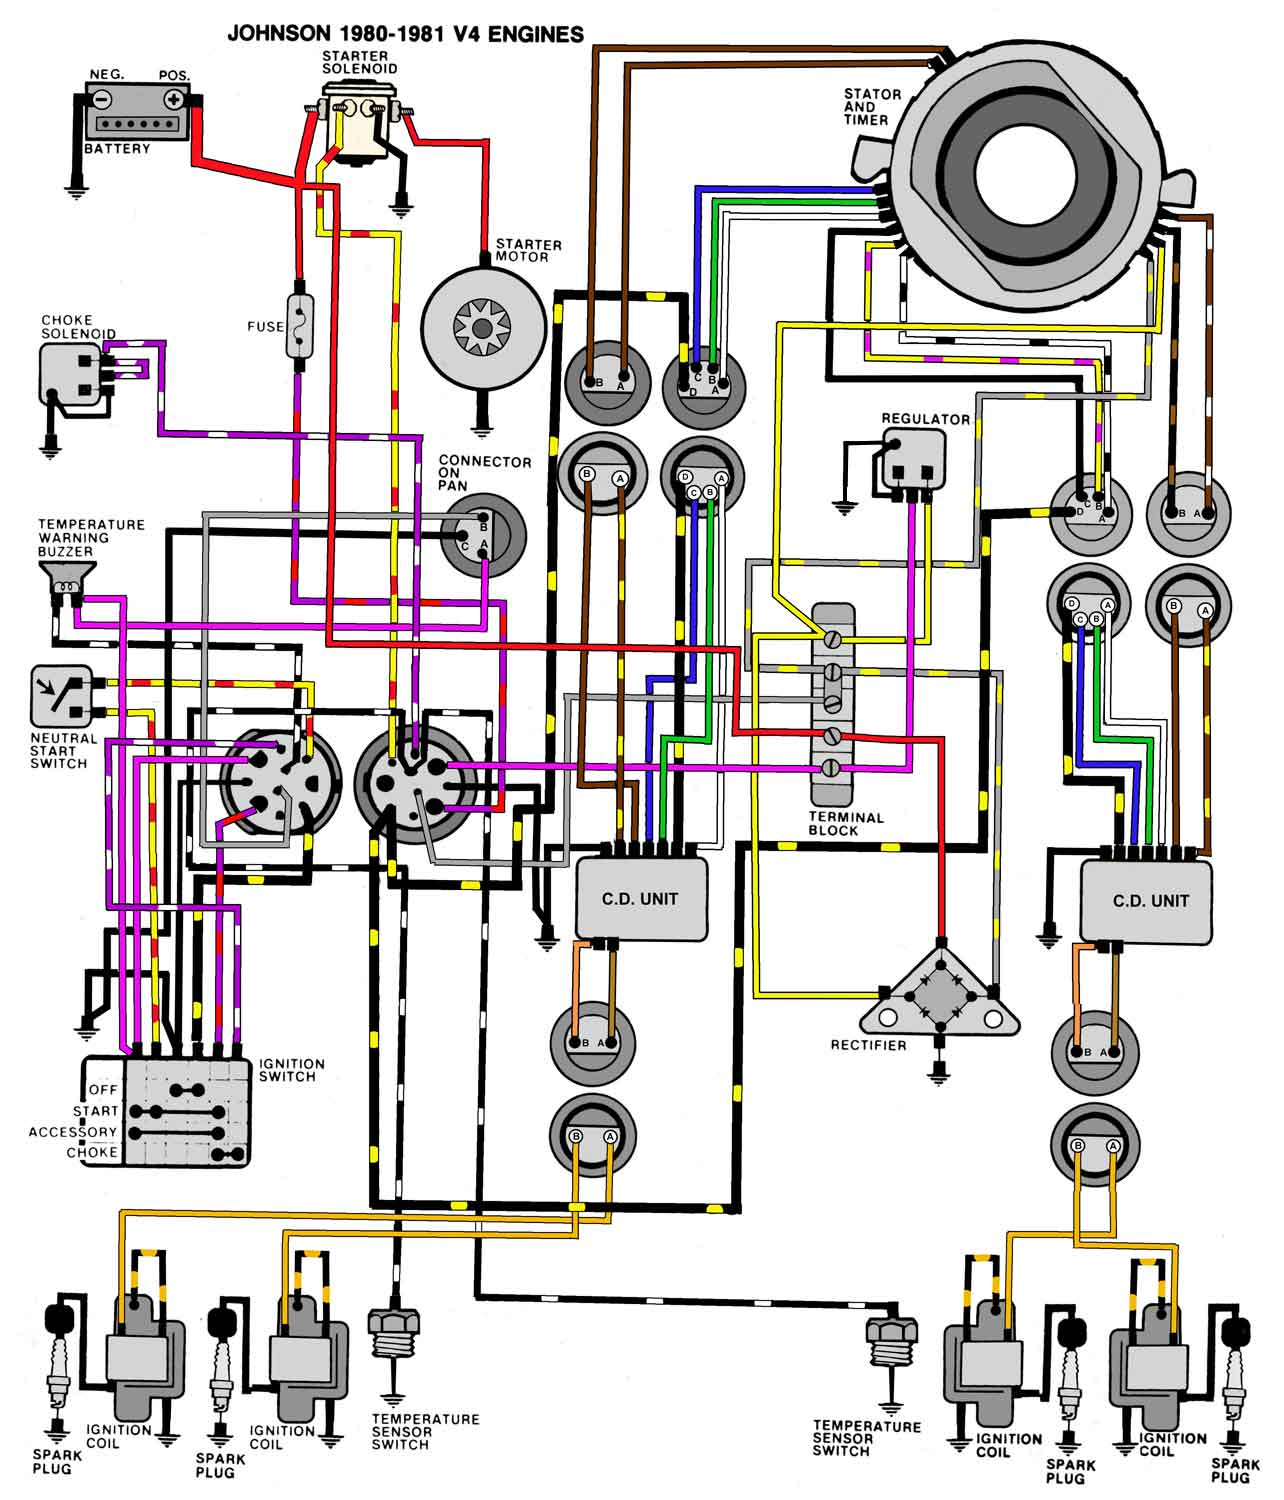 Evinrude Johnson Outboard Wiring Diagrams Mastertech Marine 1989 Omc Ignition Diagram V 4 Motors